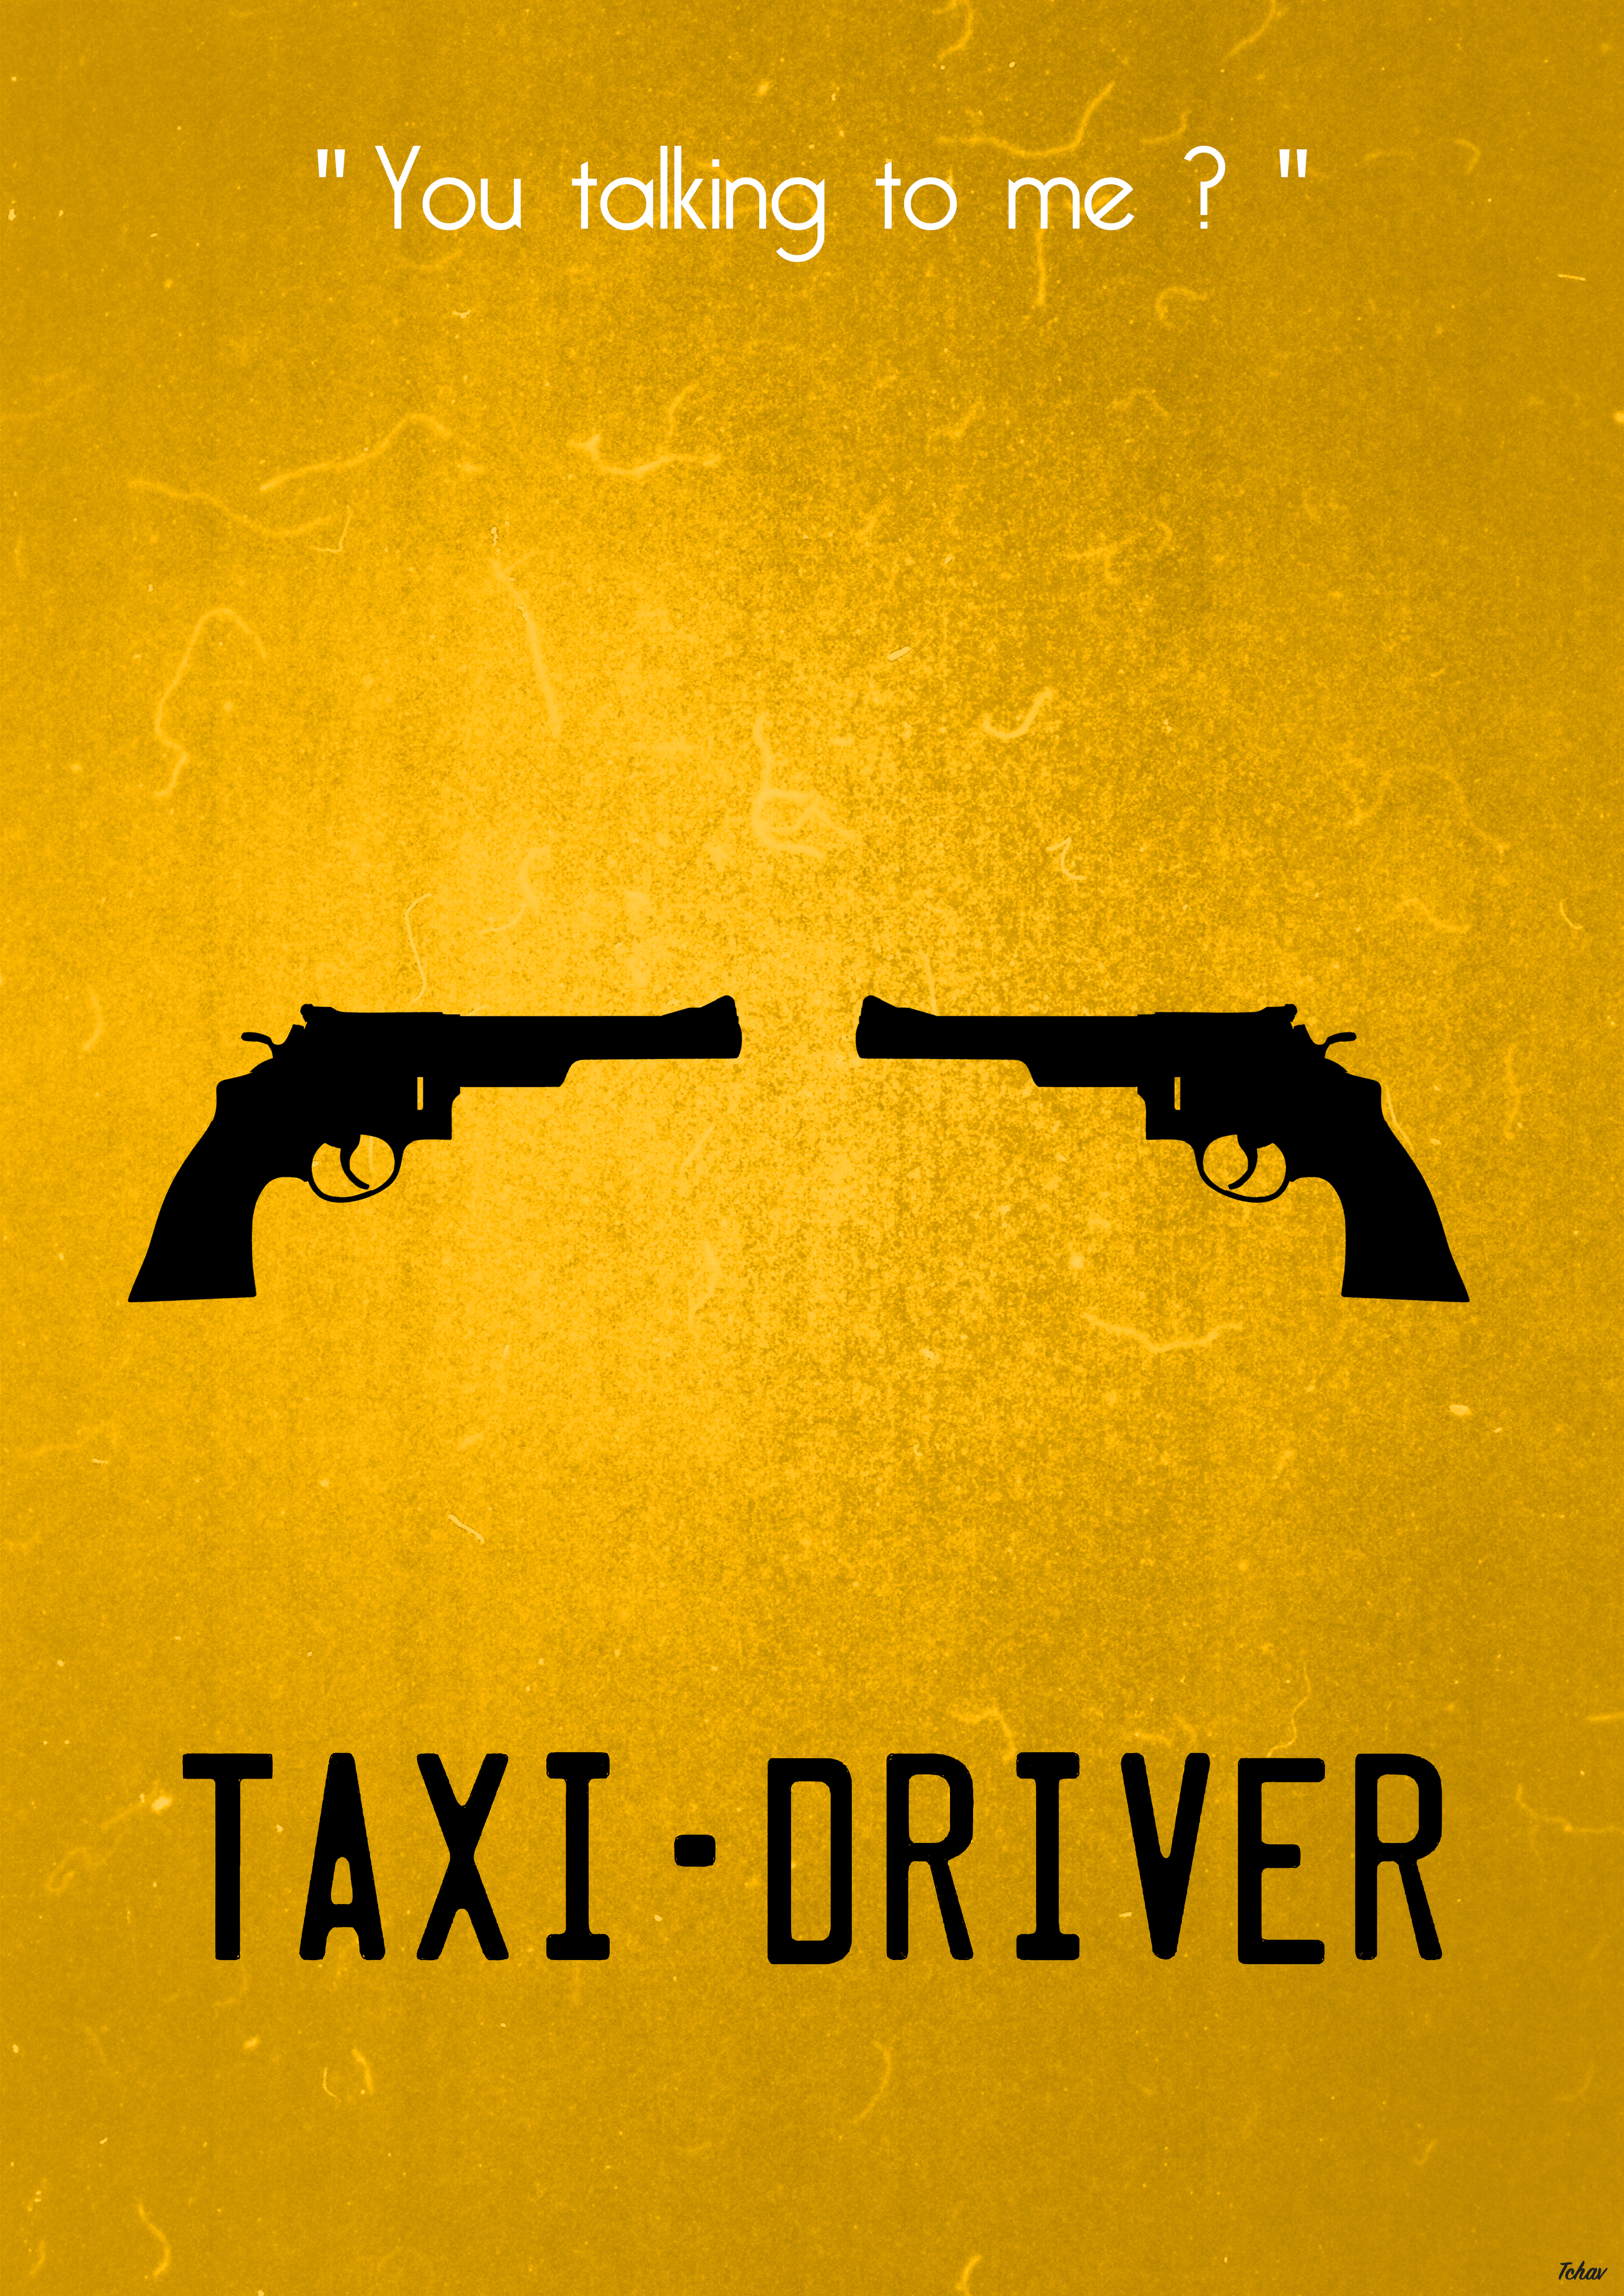 Taxi Driver (update) Minimalist Poster by Tchav on DeviantArt